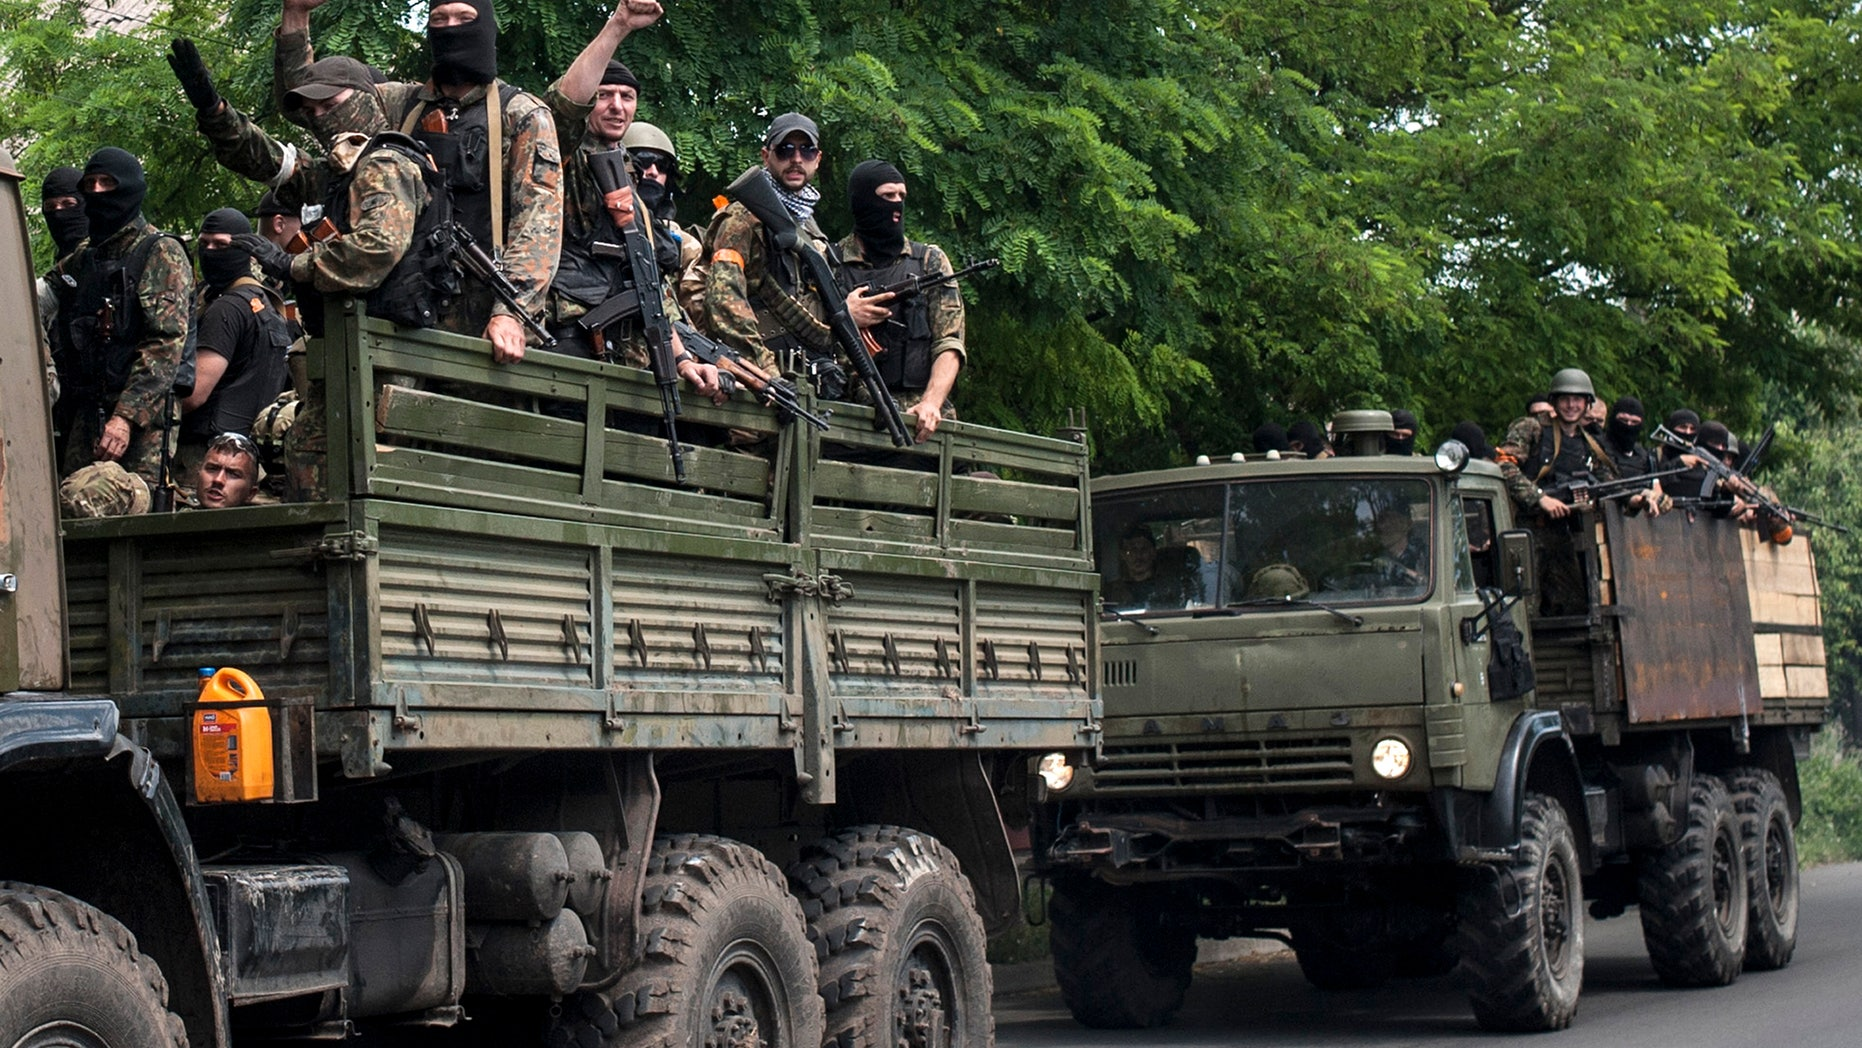 June 13, 2014 - Ukrainian troops stand atop vehicles as they leave a site of a battle in Mariupol, eastern Ukraine. Ukraine's interior minister says government troops attacked pro-Russian separatists in the southern port of Mariupol.